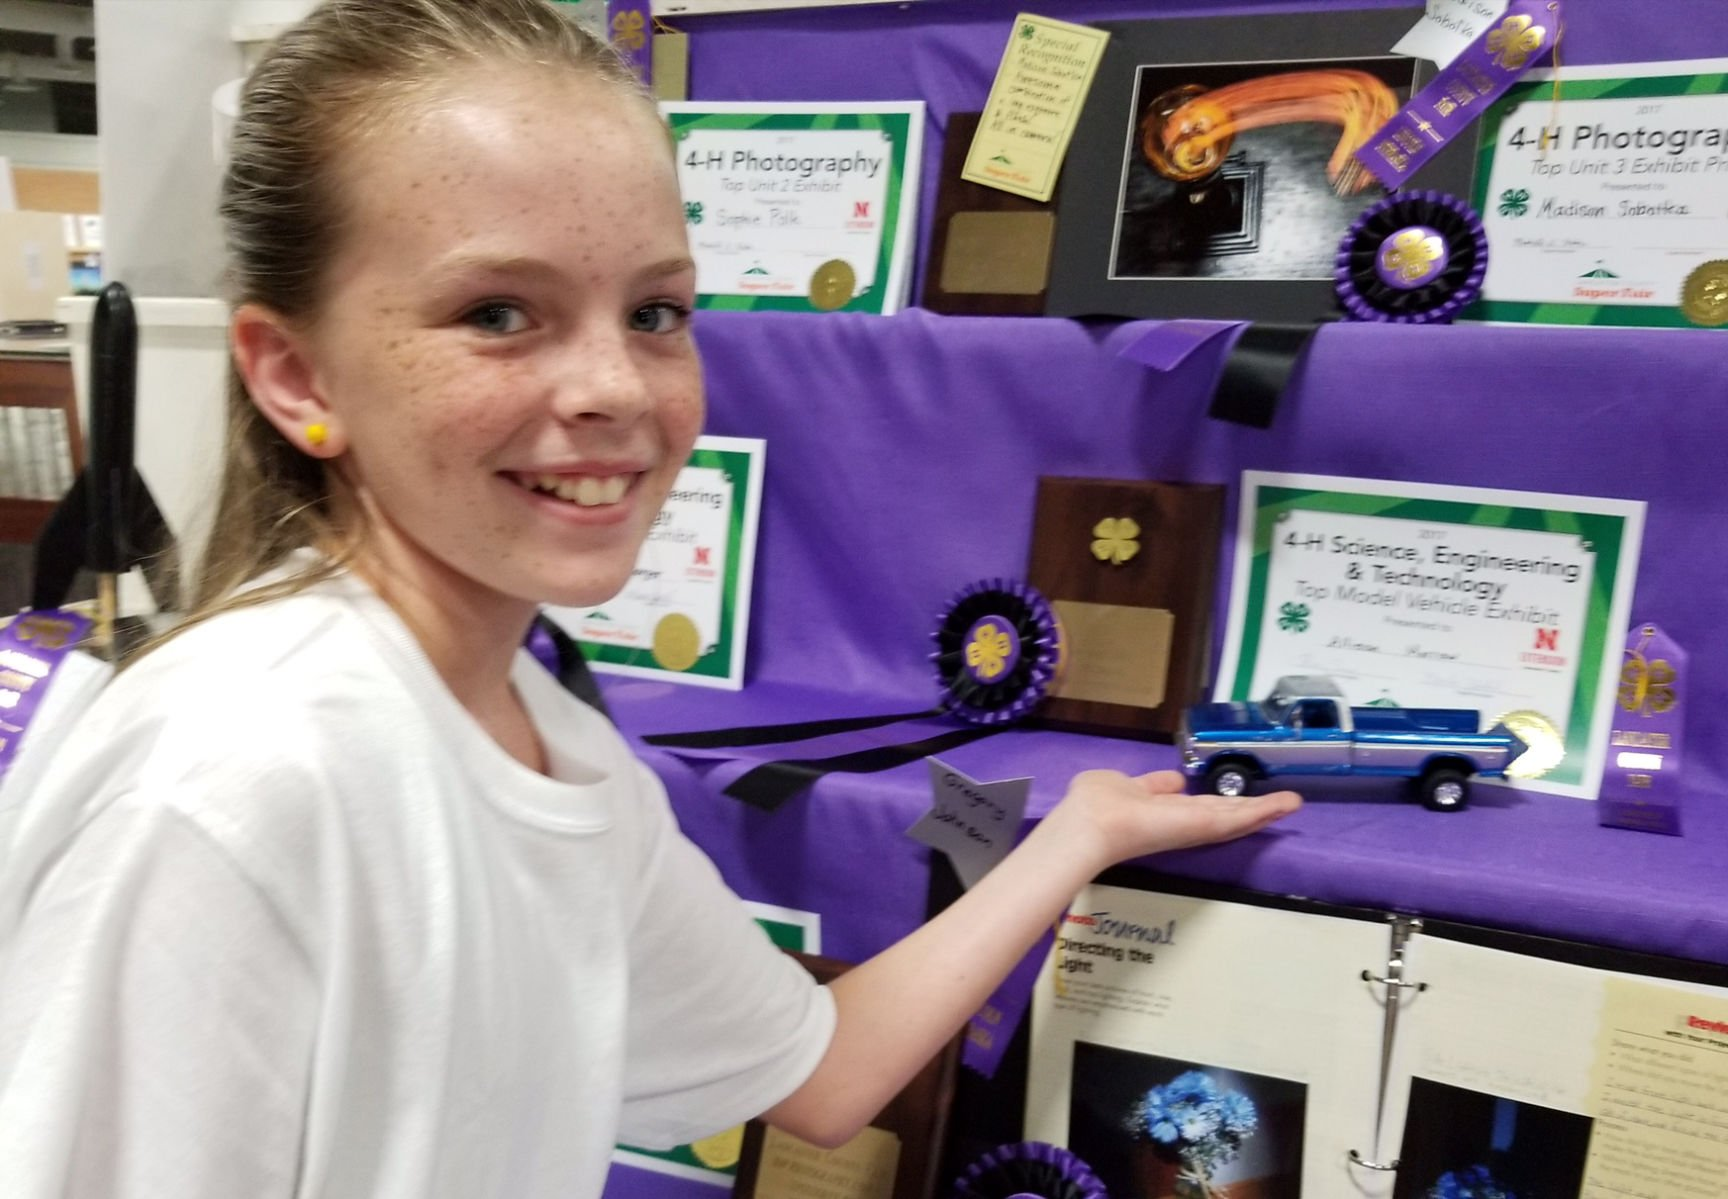 2 cited after stealing 11-year-old 4H project from fair